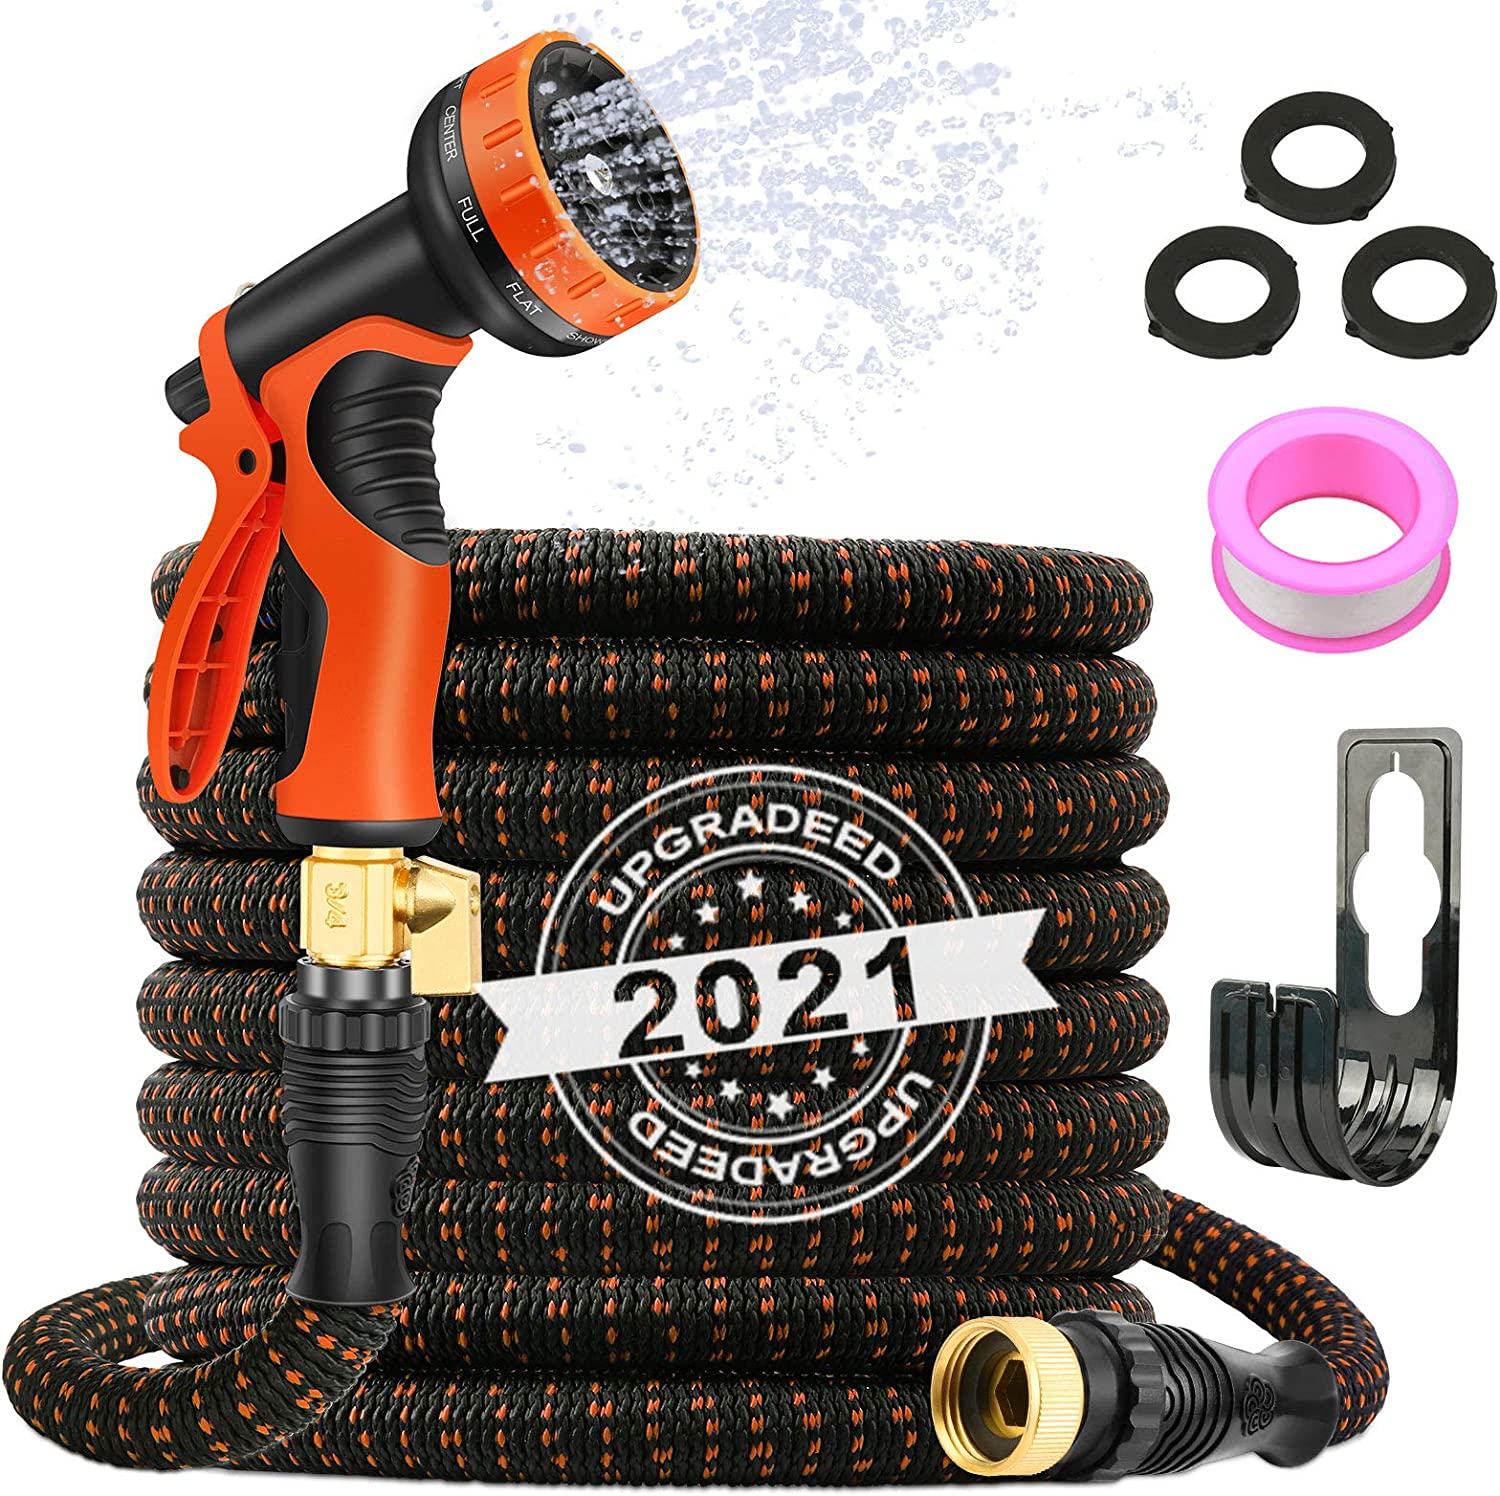 AXUAN Expandable Garden Hose 50ft - Expanding Flexible Water Hose with 10 Function Spray Nozzle, Leakproof Durable 3750D Fabric Lightweight No Kink 3/4